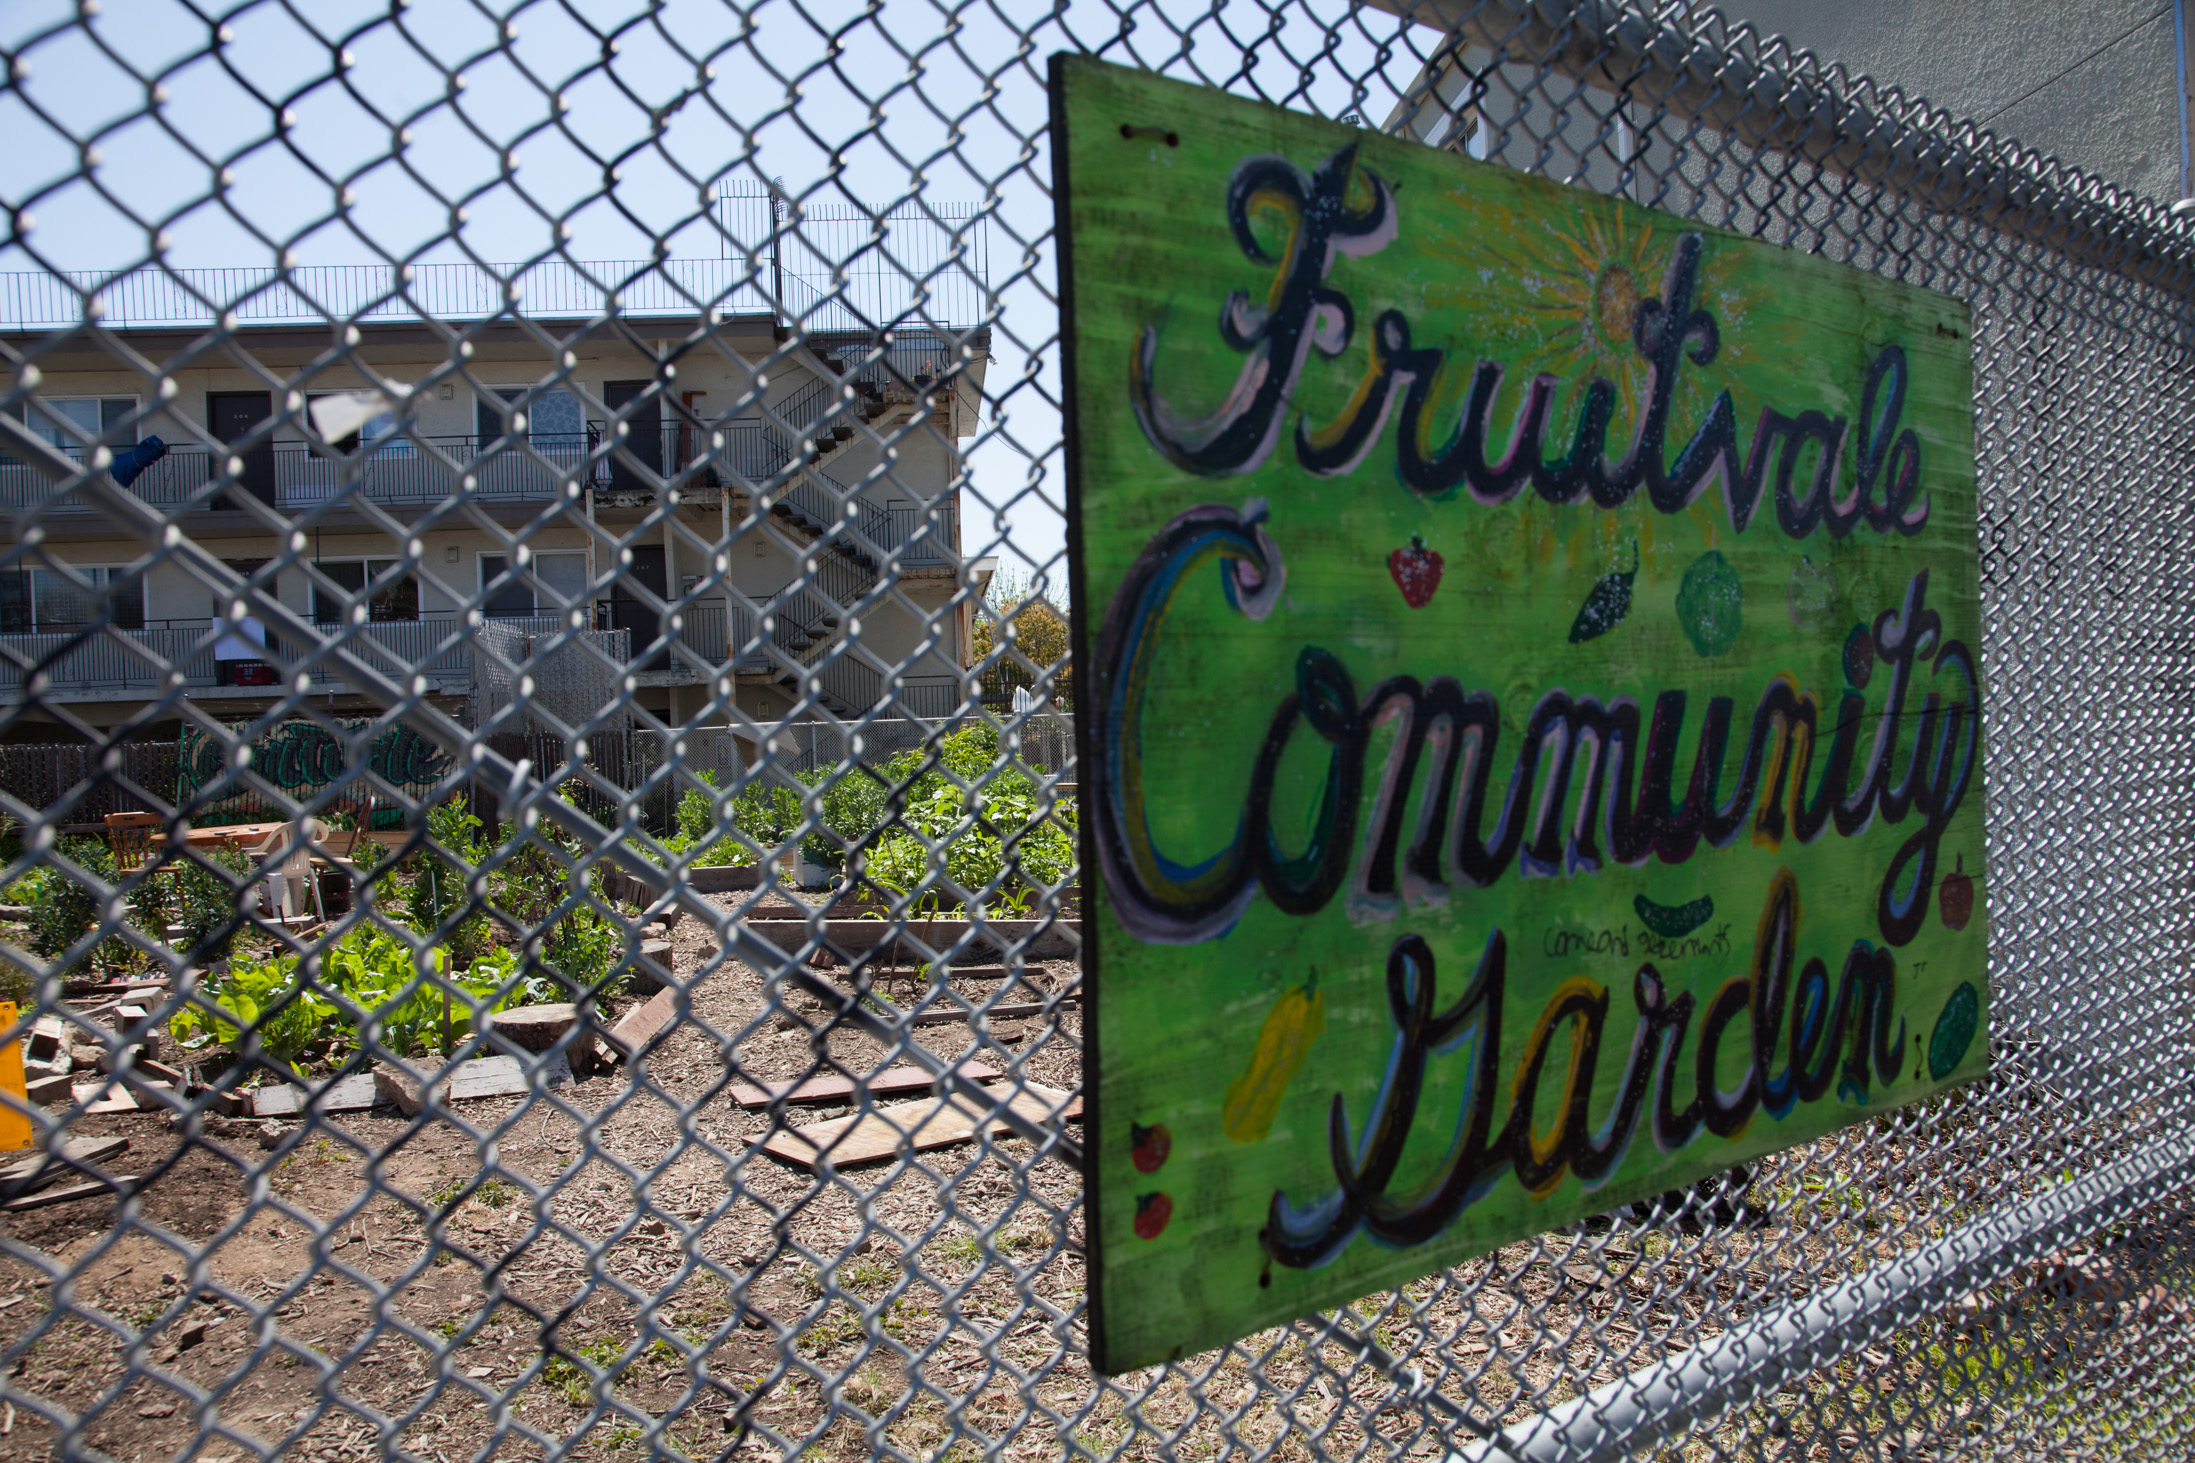 Fruitvale Community Garden located at 2759 Foothill Blvd. Photo by Lori Eanes.